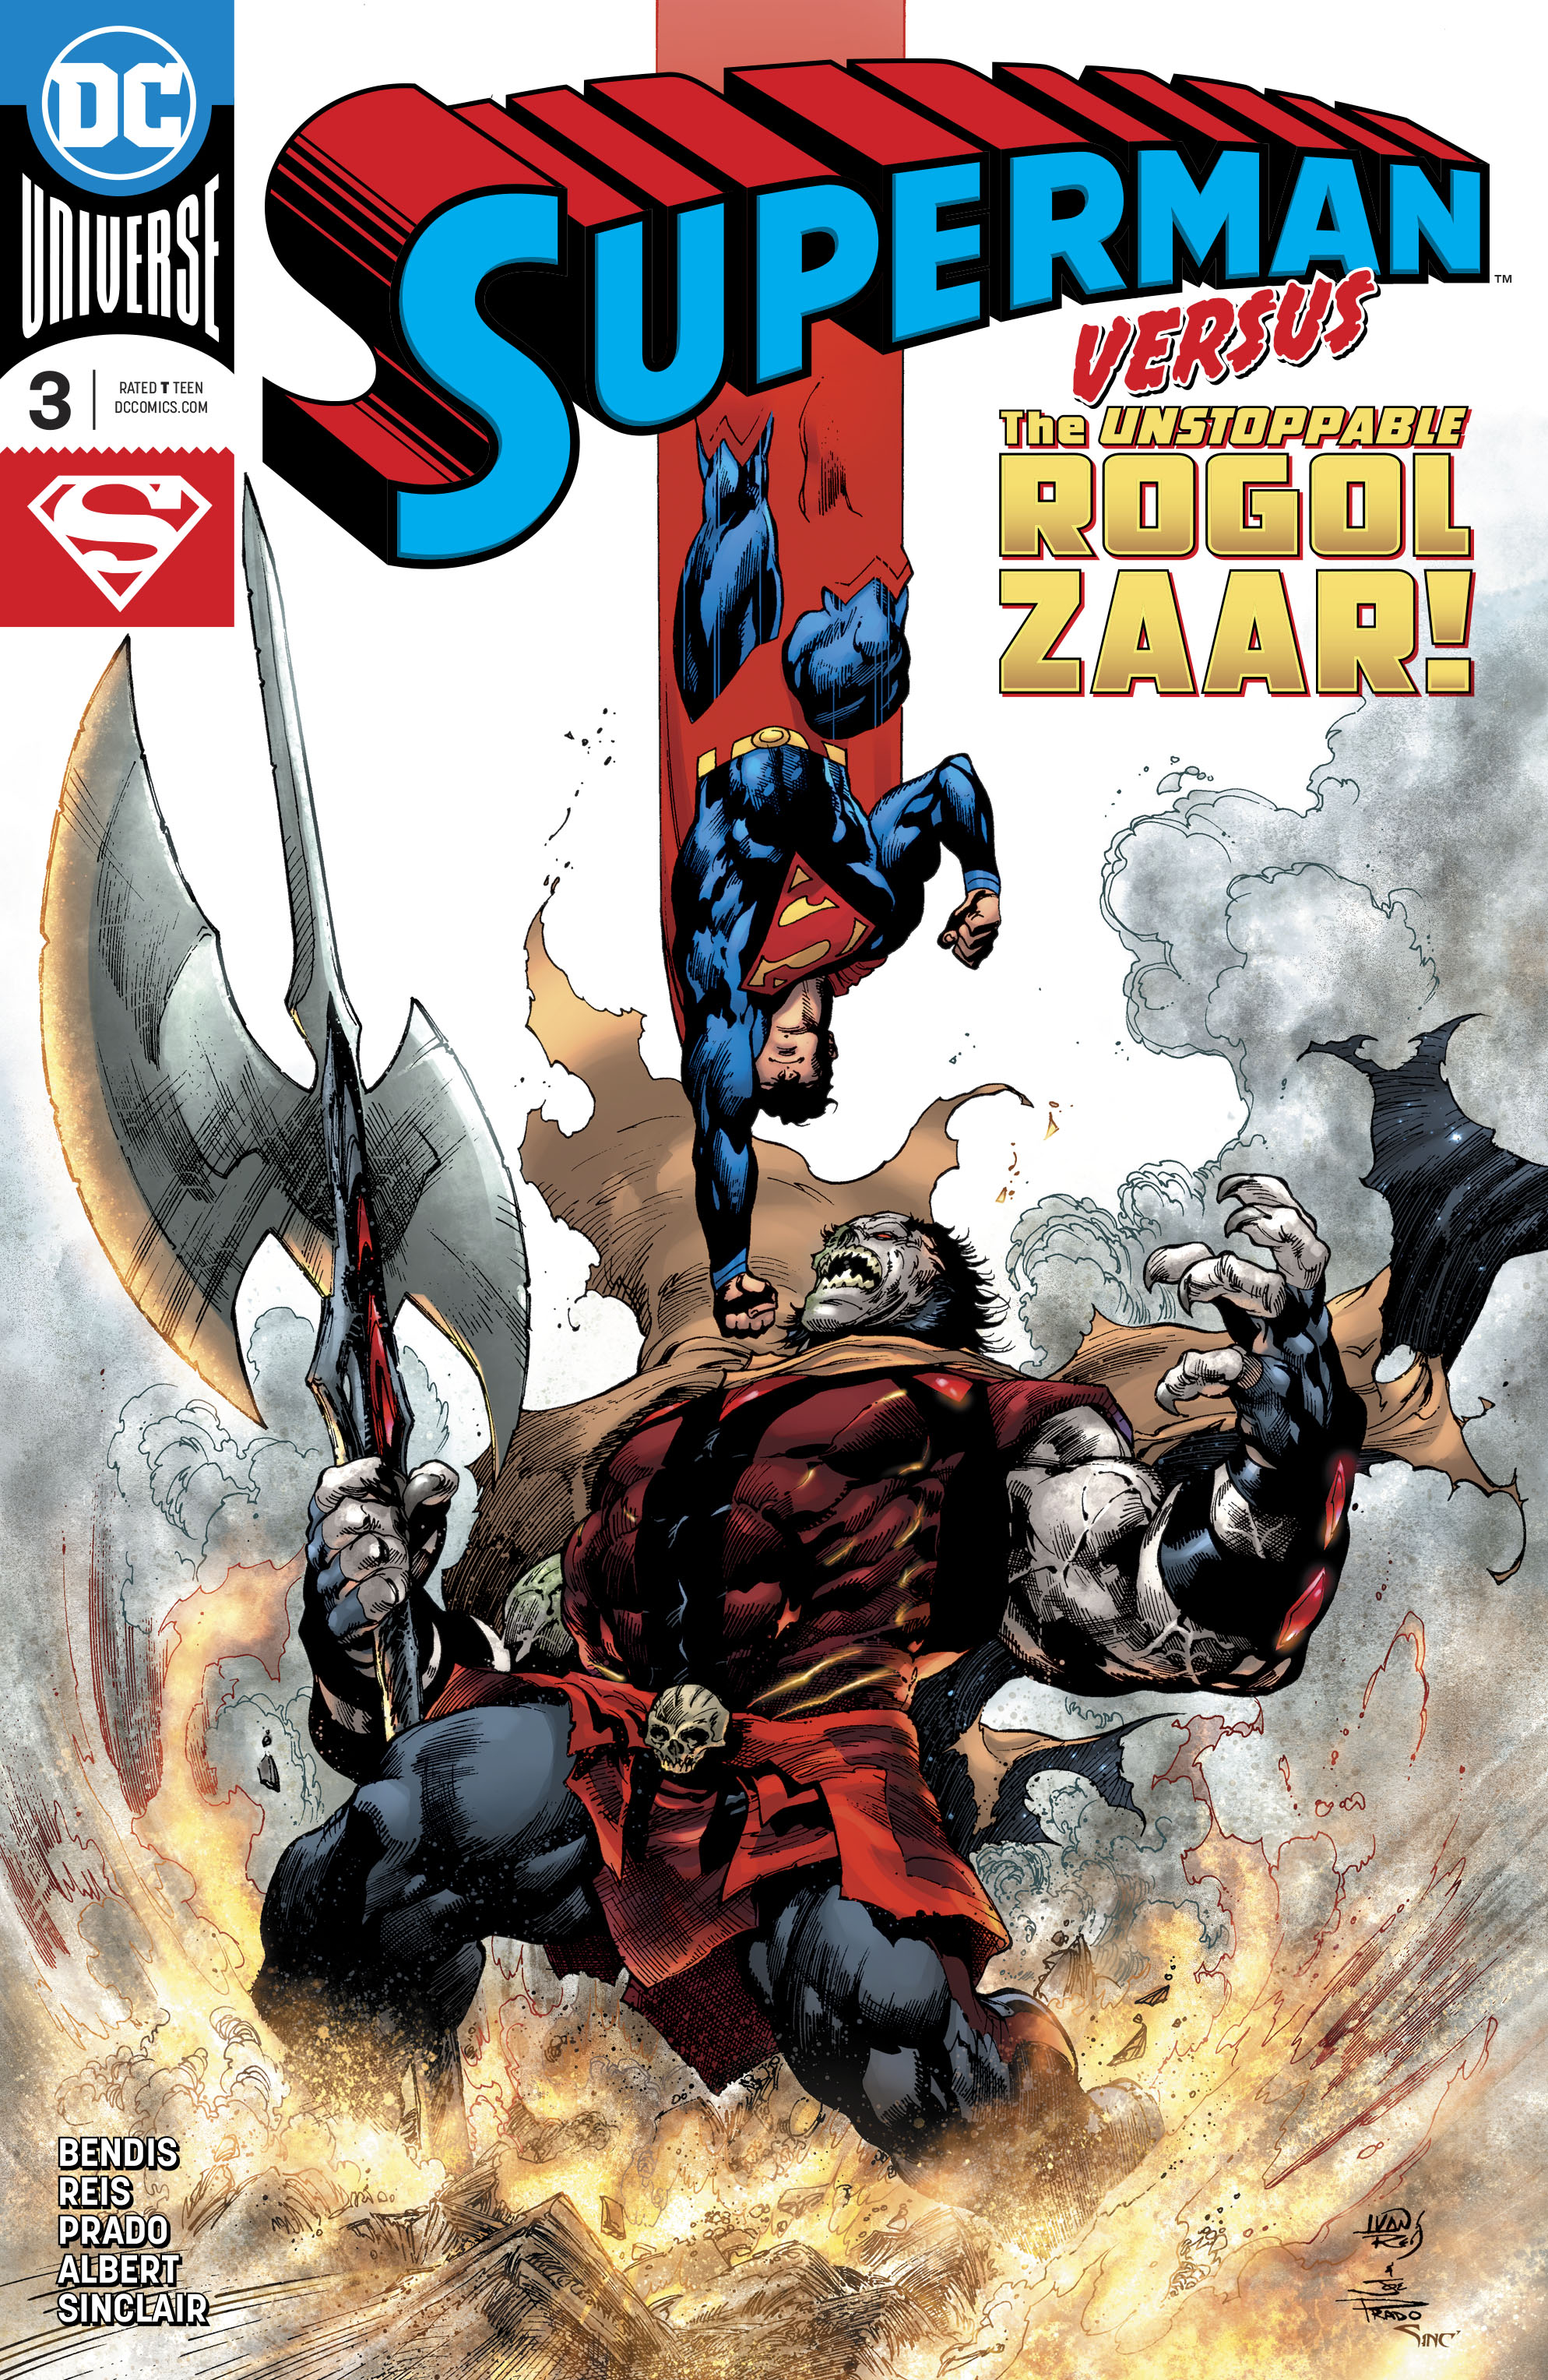 Capa de Superman #3, destaque do Amálgama, por Ivan Reis e Joe Prado.